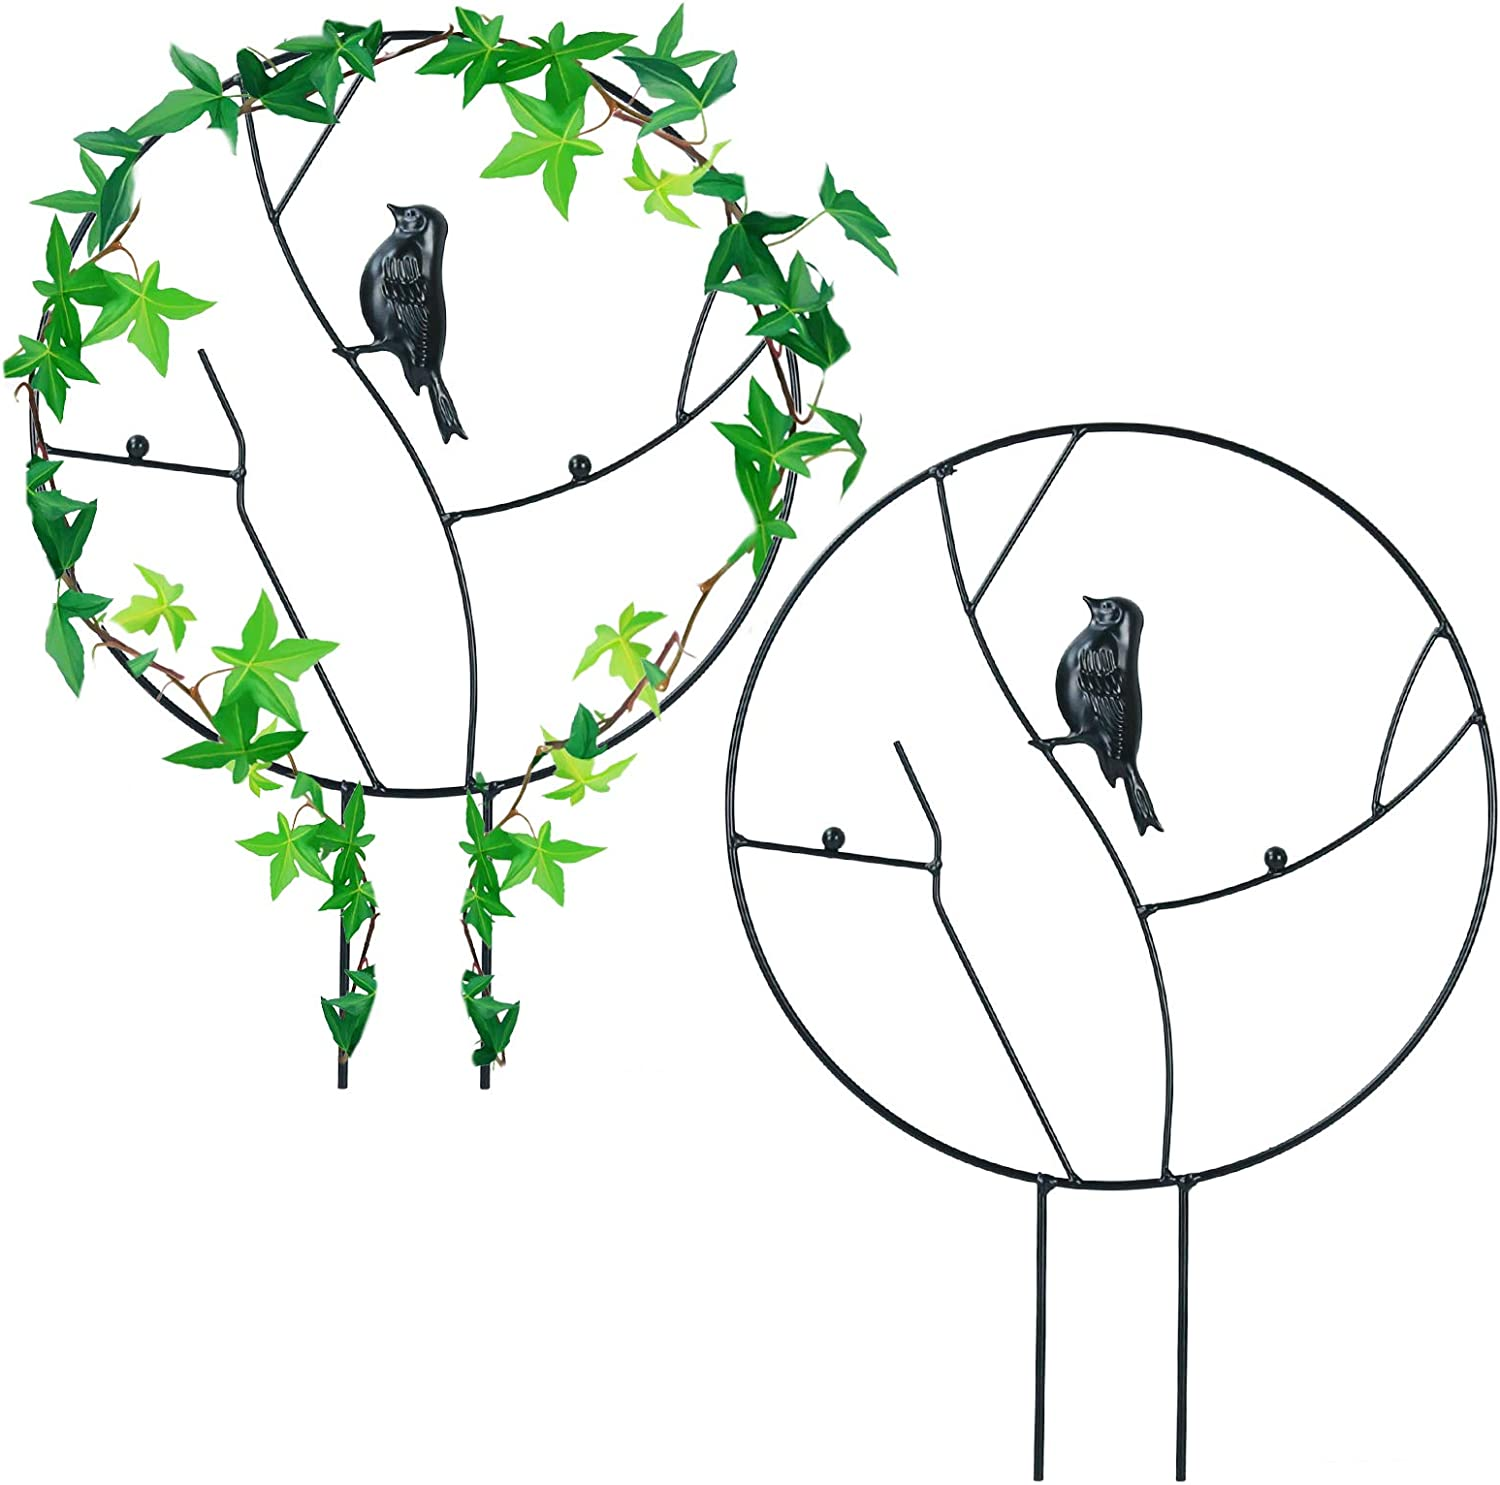 Ibnotuiy 2Pcs Metal Garden Trellis for Climbing Planters Outdoor Potted Bird Round Circle Large Trellis Planter Support Stakes for Flowers Vines Houseplants (Large, Black)